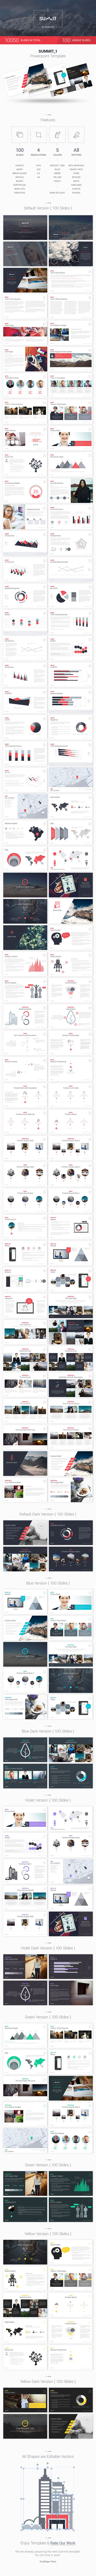 Summit 1 PowerPoint Template - Business PowerPoint Templates